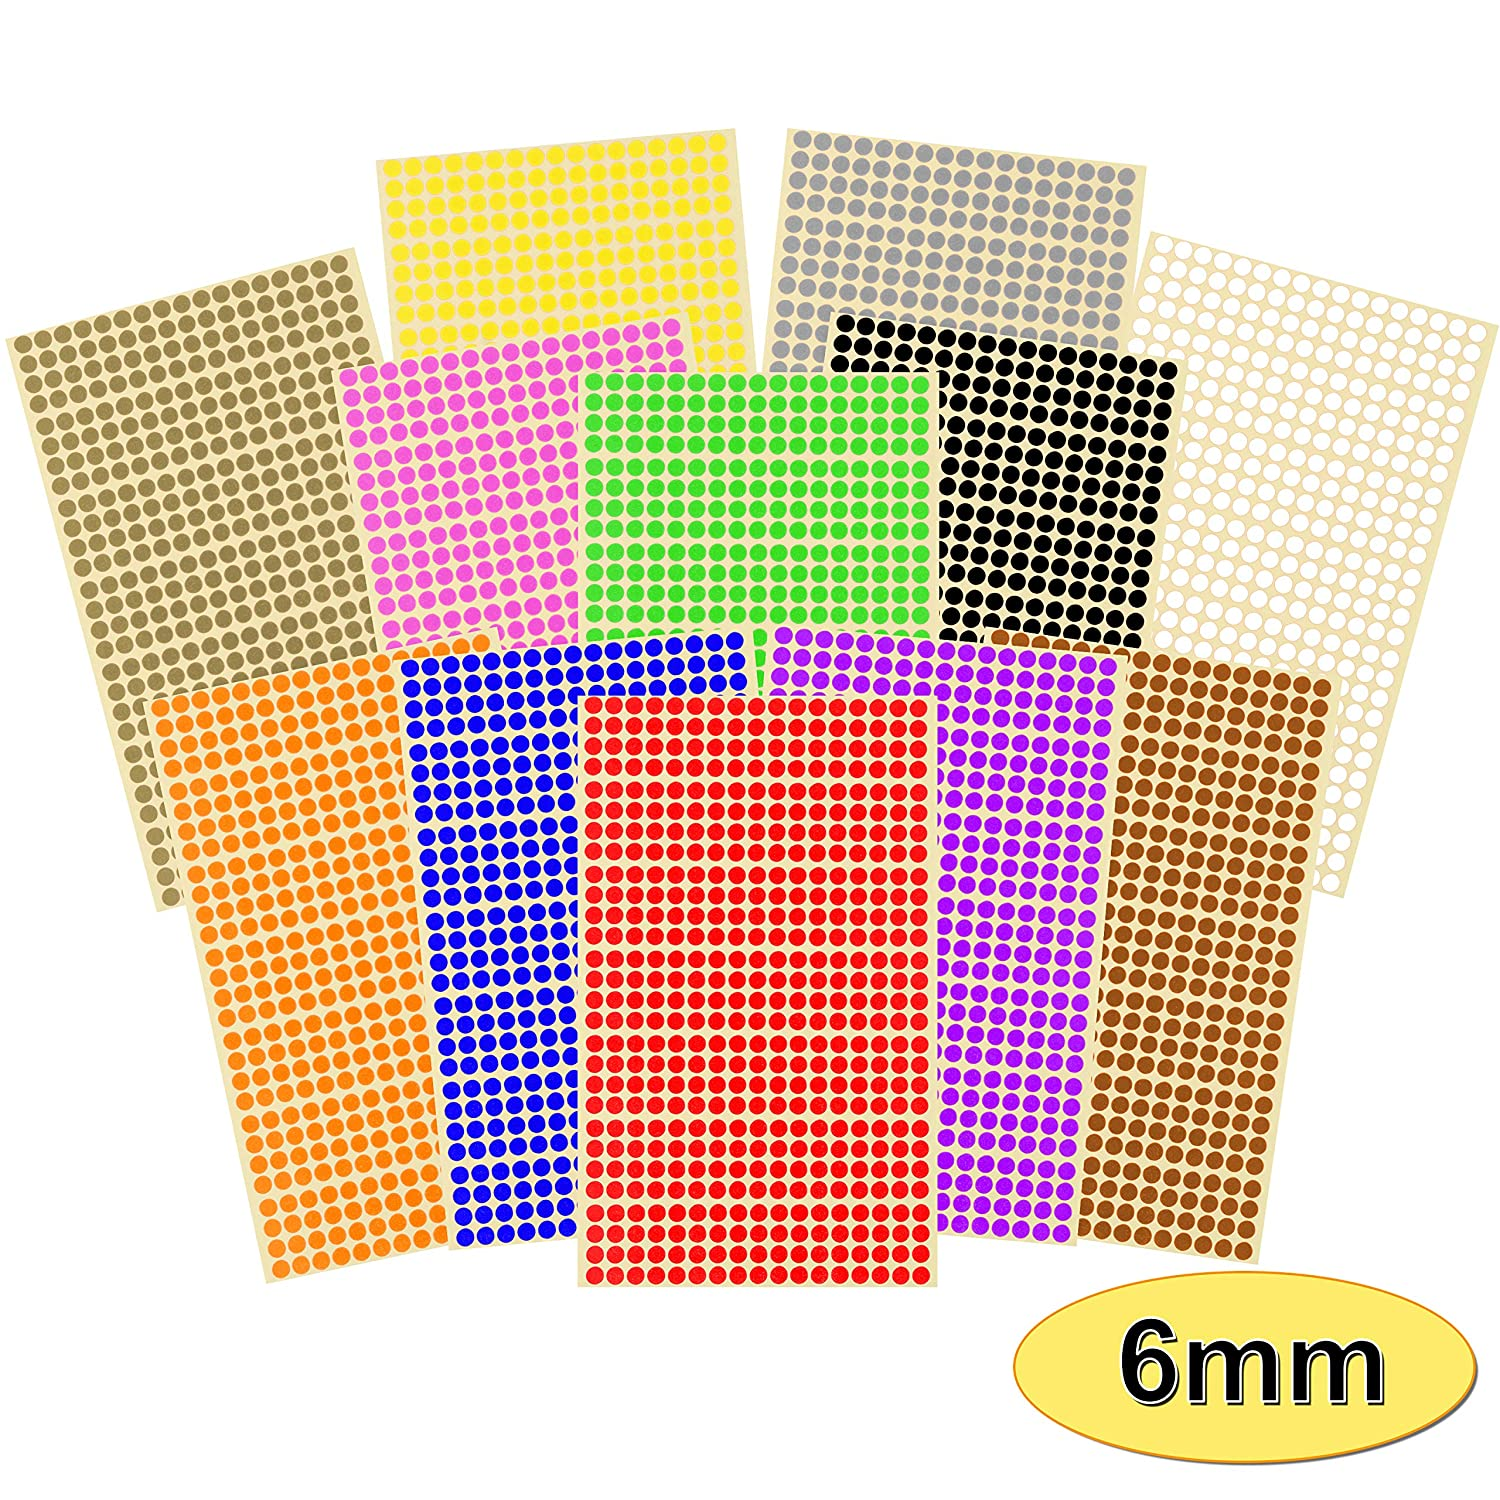 Choice of 12 Colours Best-Selling Pack of 7140 x 6mm 1//4 Inch Round Coloured Easy Peel Self Adhesive Dot Stickers for Colour Coding Calendars 15 Sheets of High Quality Sticky Dots Blue